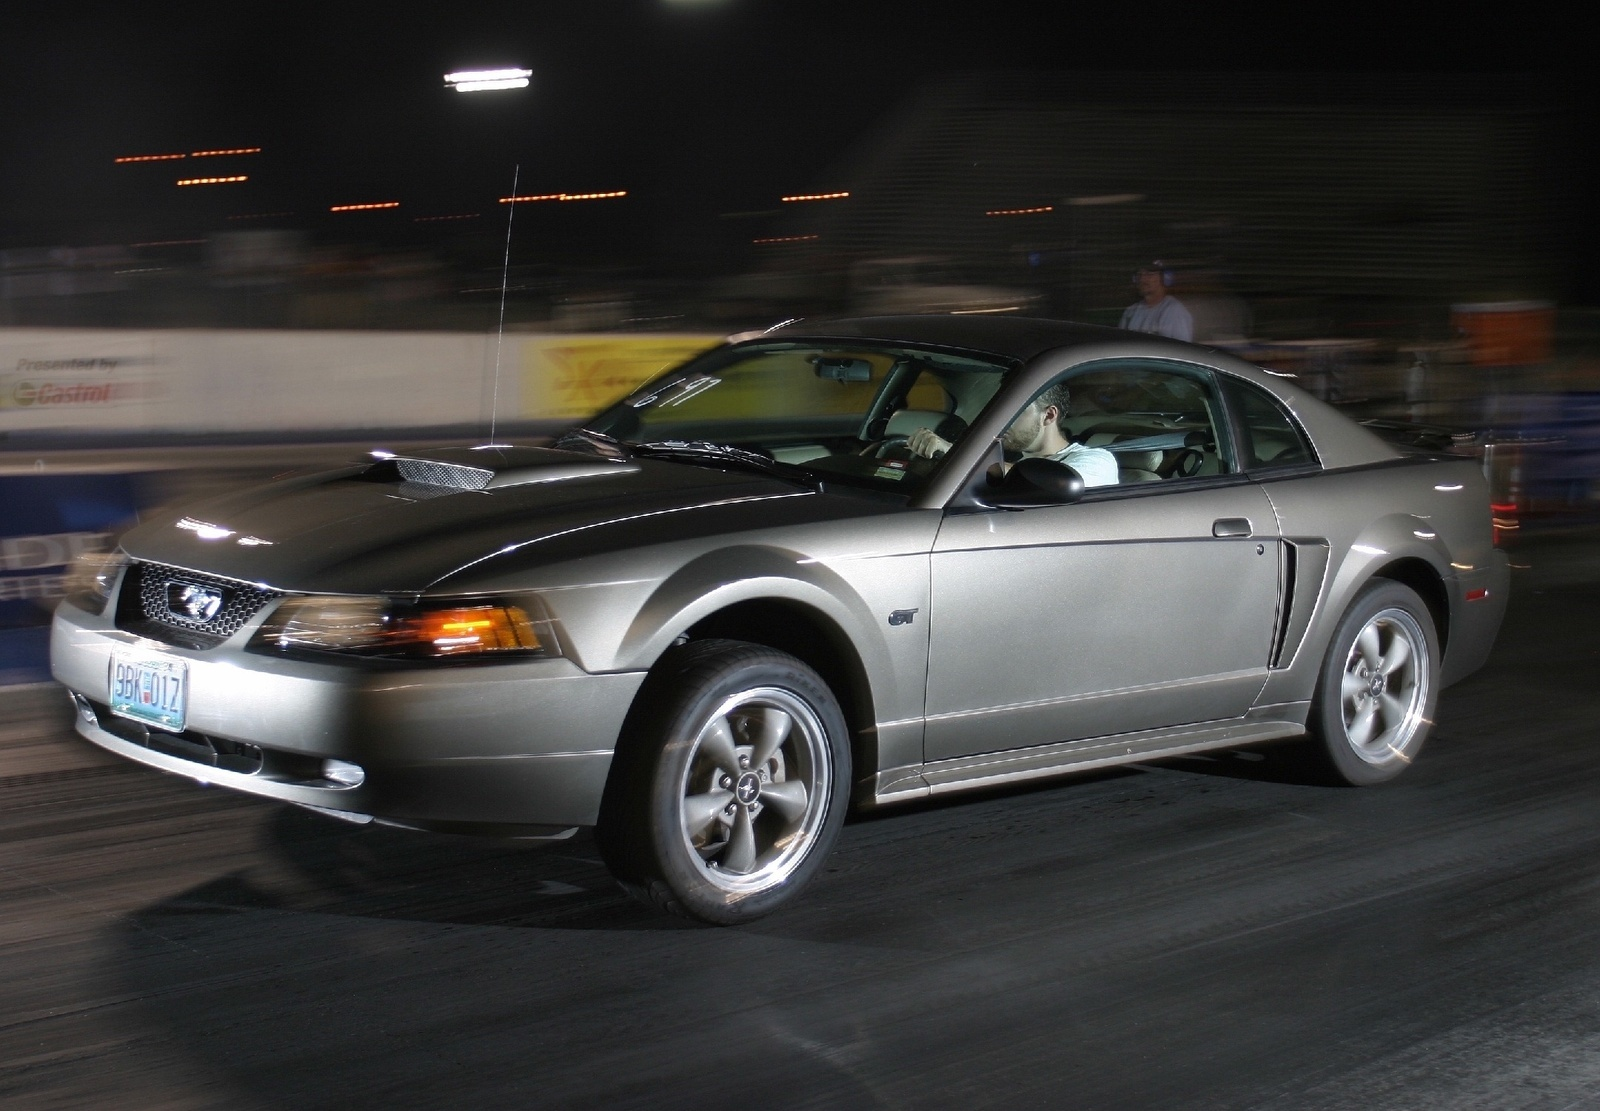 Ford mustang questions 02 gt need some advice on lauching at the dragstrip cargurus